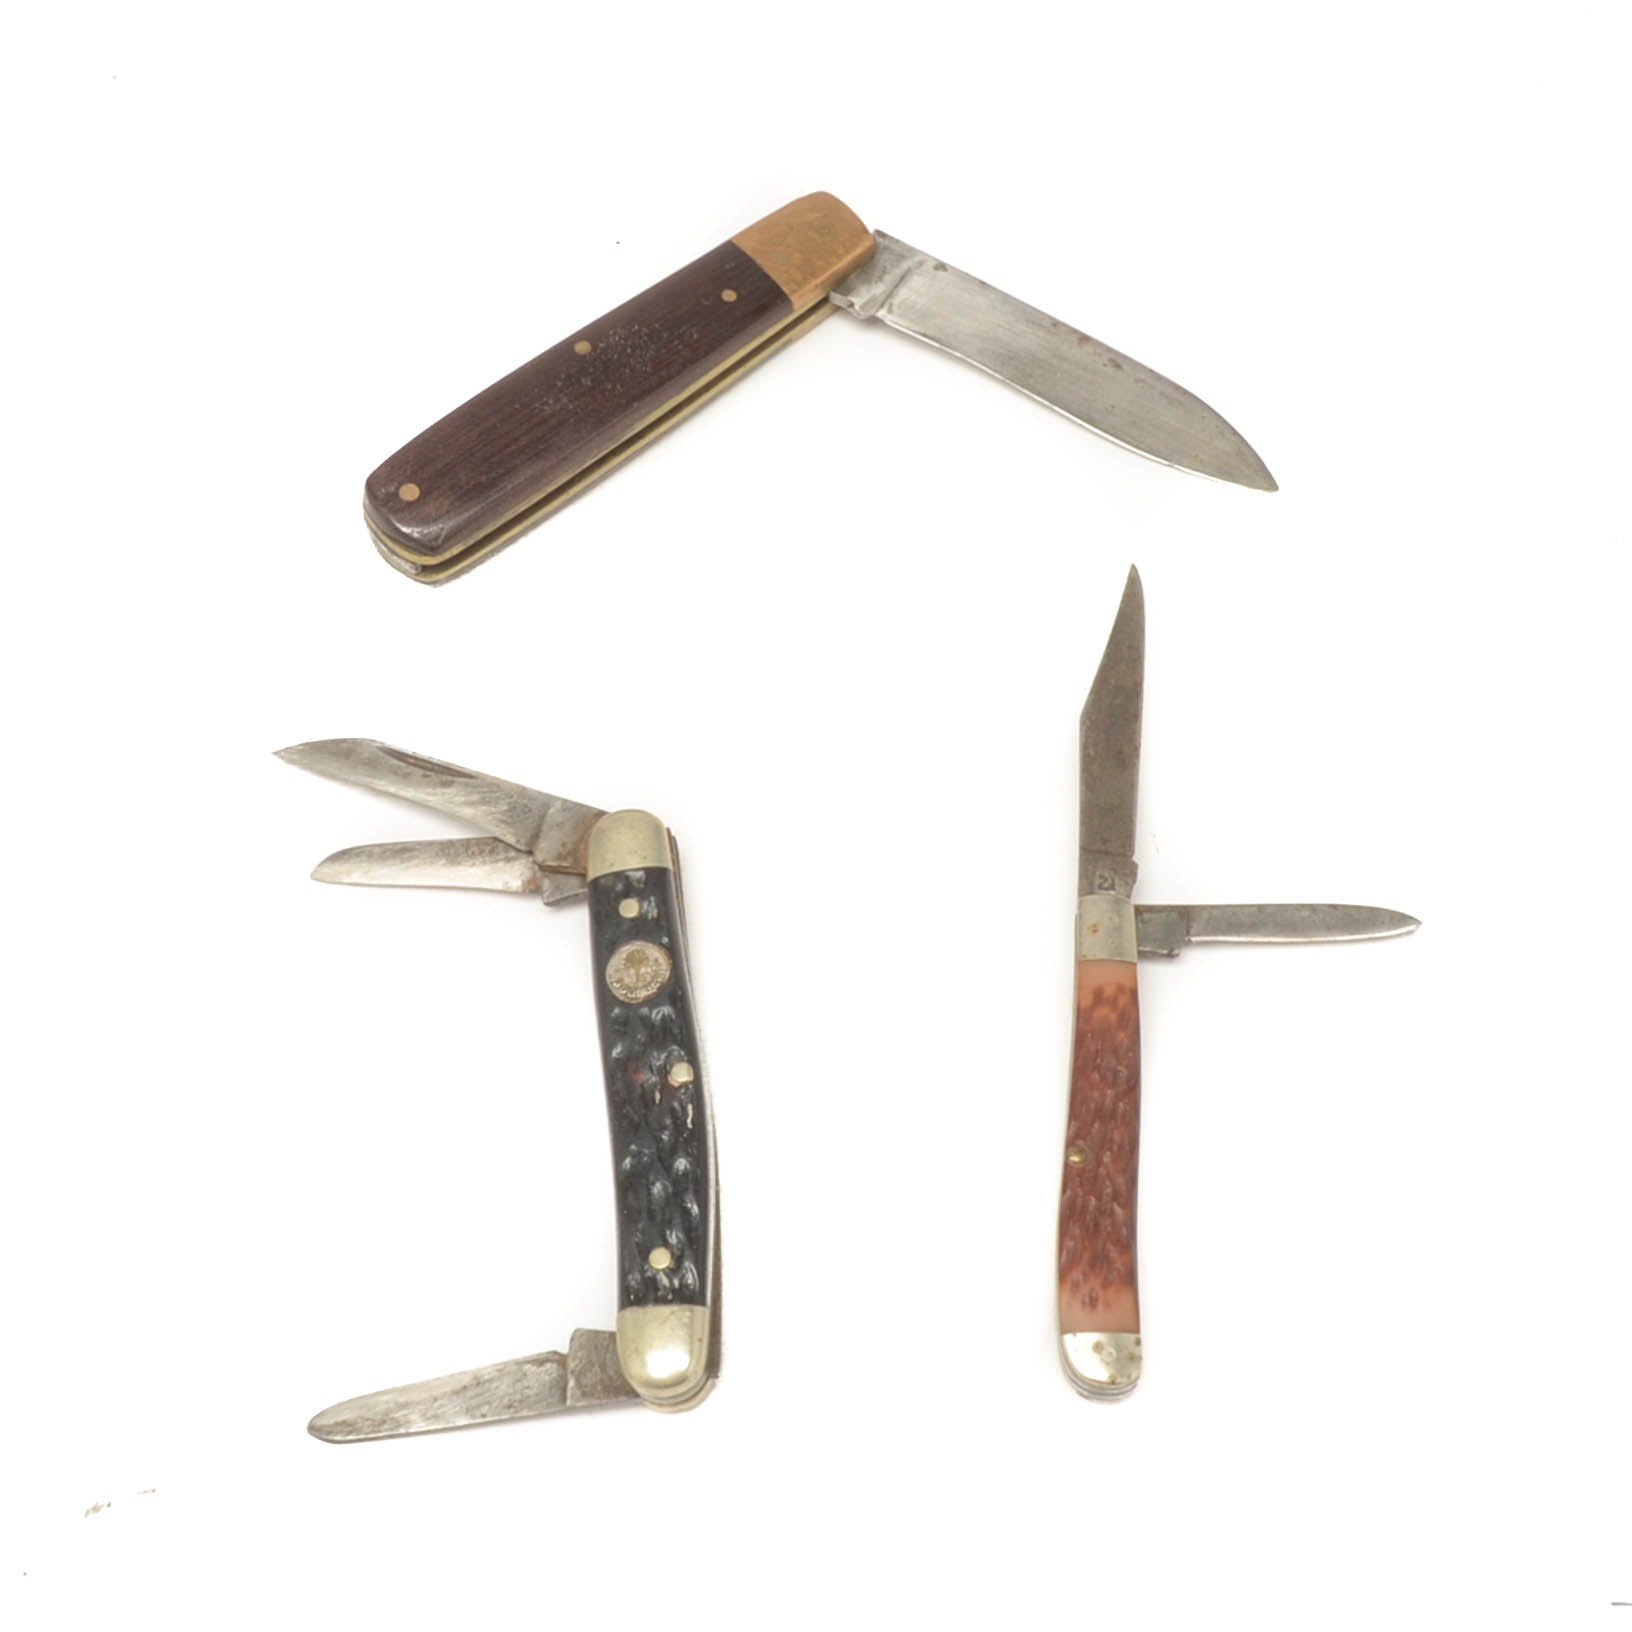 Three Pocket Knives, One Marked Solingen